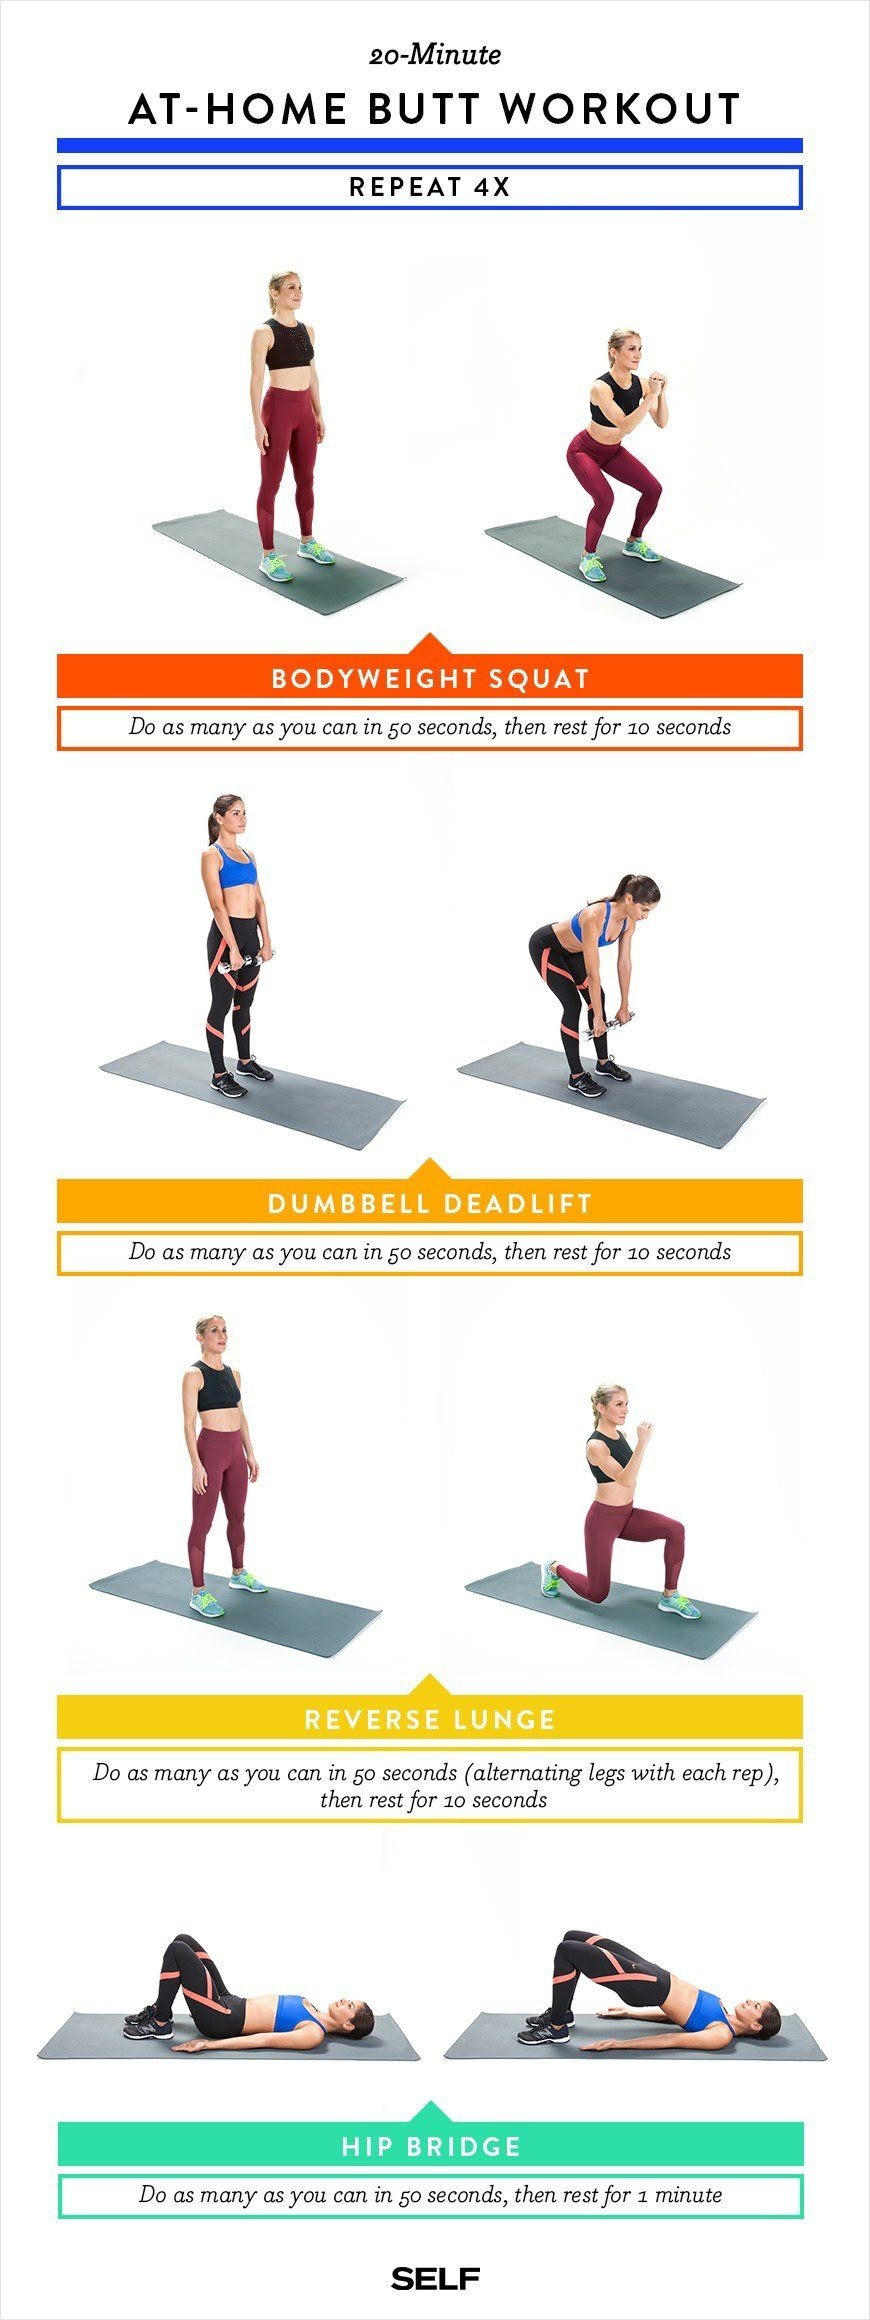 d364d3d57b1b Fitness trainer Emily Skye shares a killer 20-minute butt workout routine  that you can do anywhere